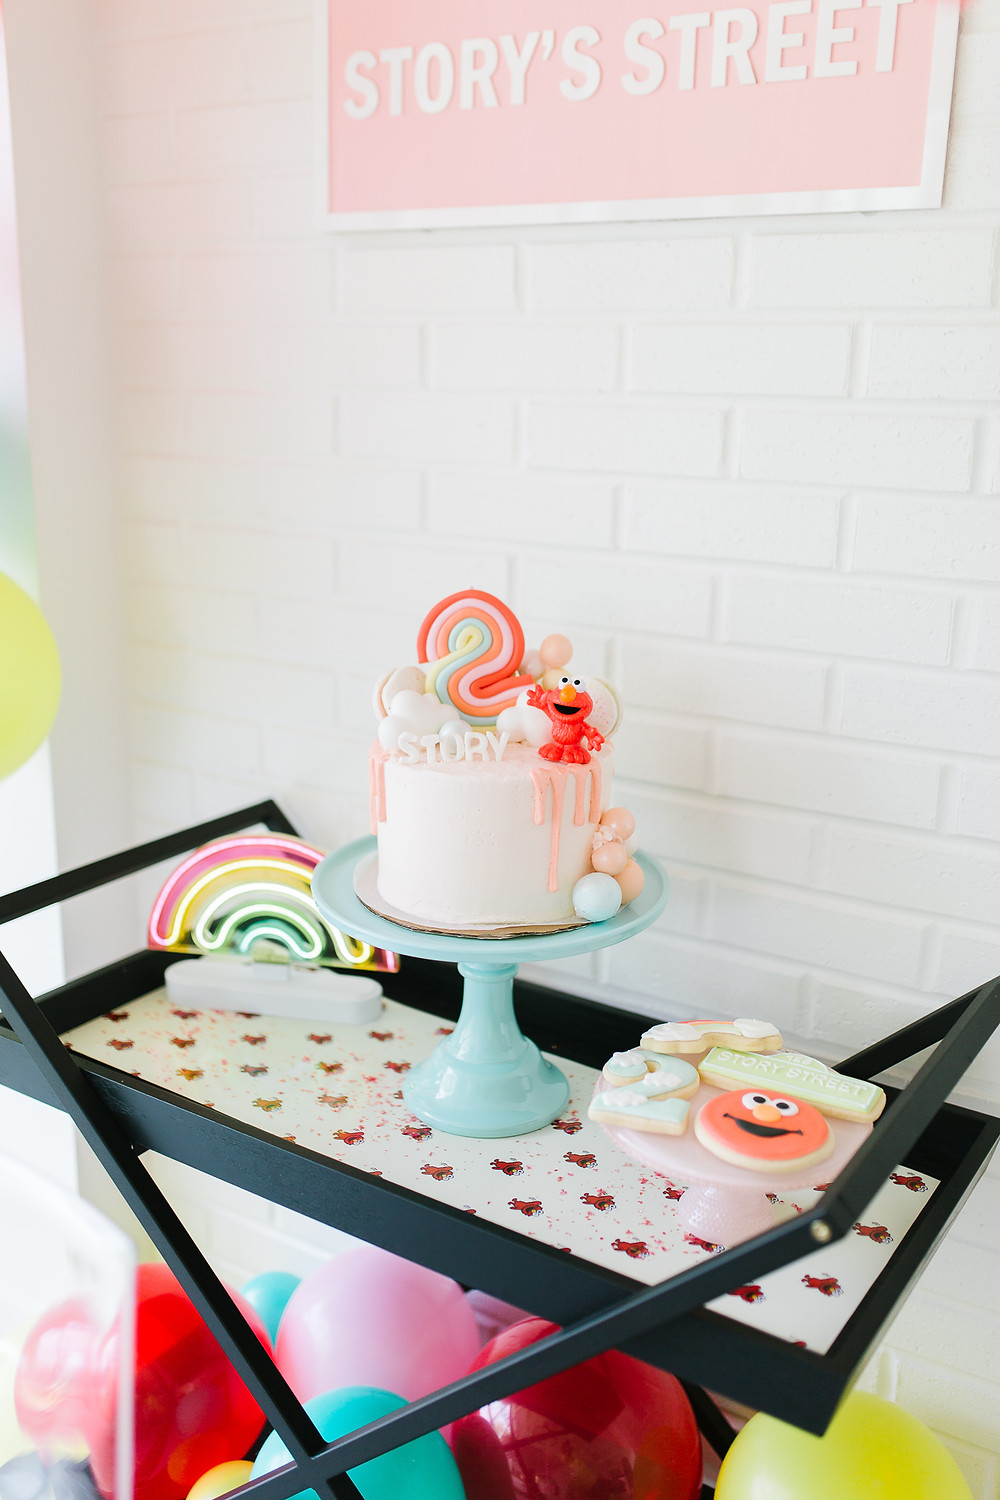 An Elmo Birthday party with colourful balloons, pink Elmo birthday cake and Elmo cookies on a black cart.